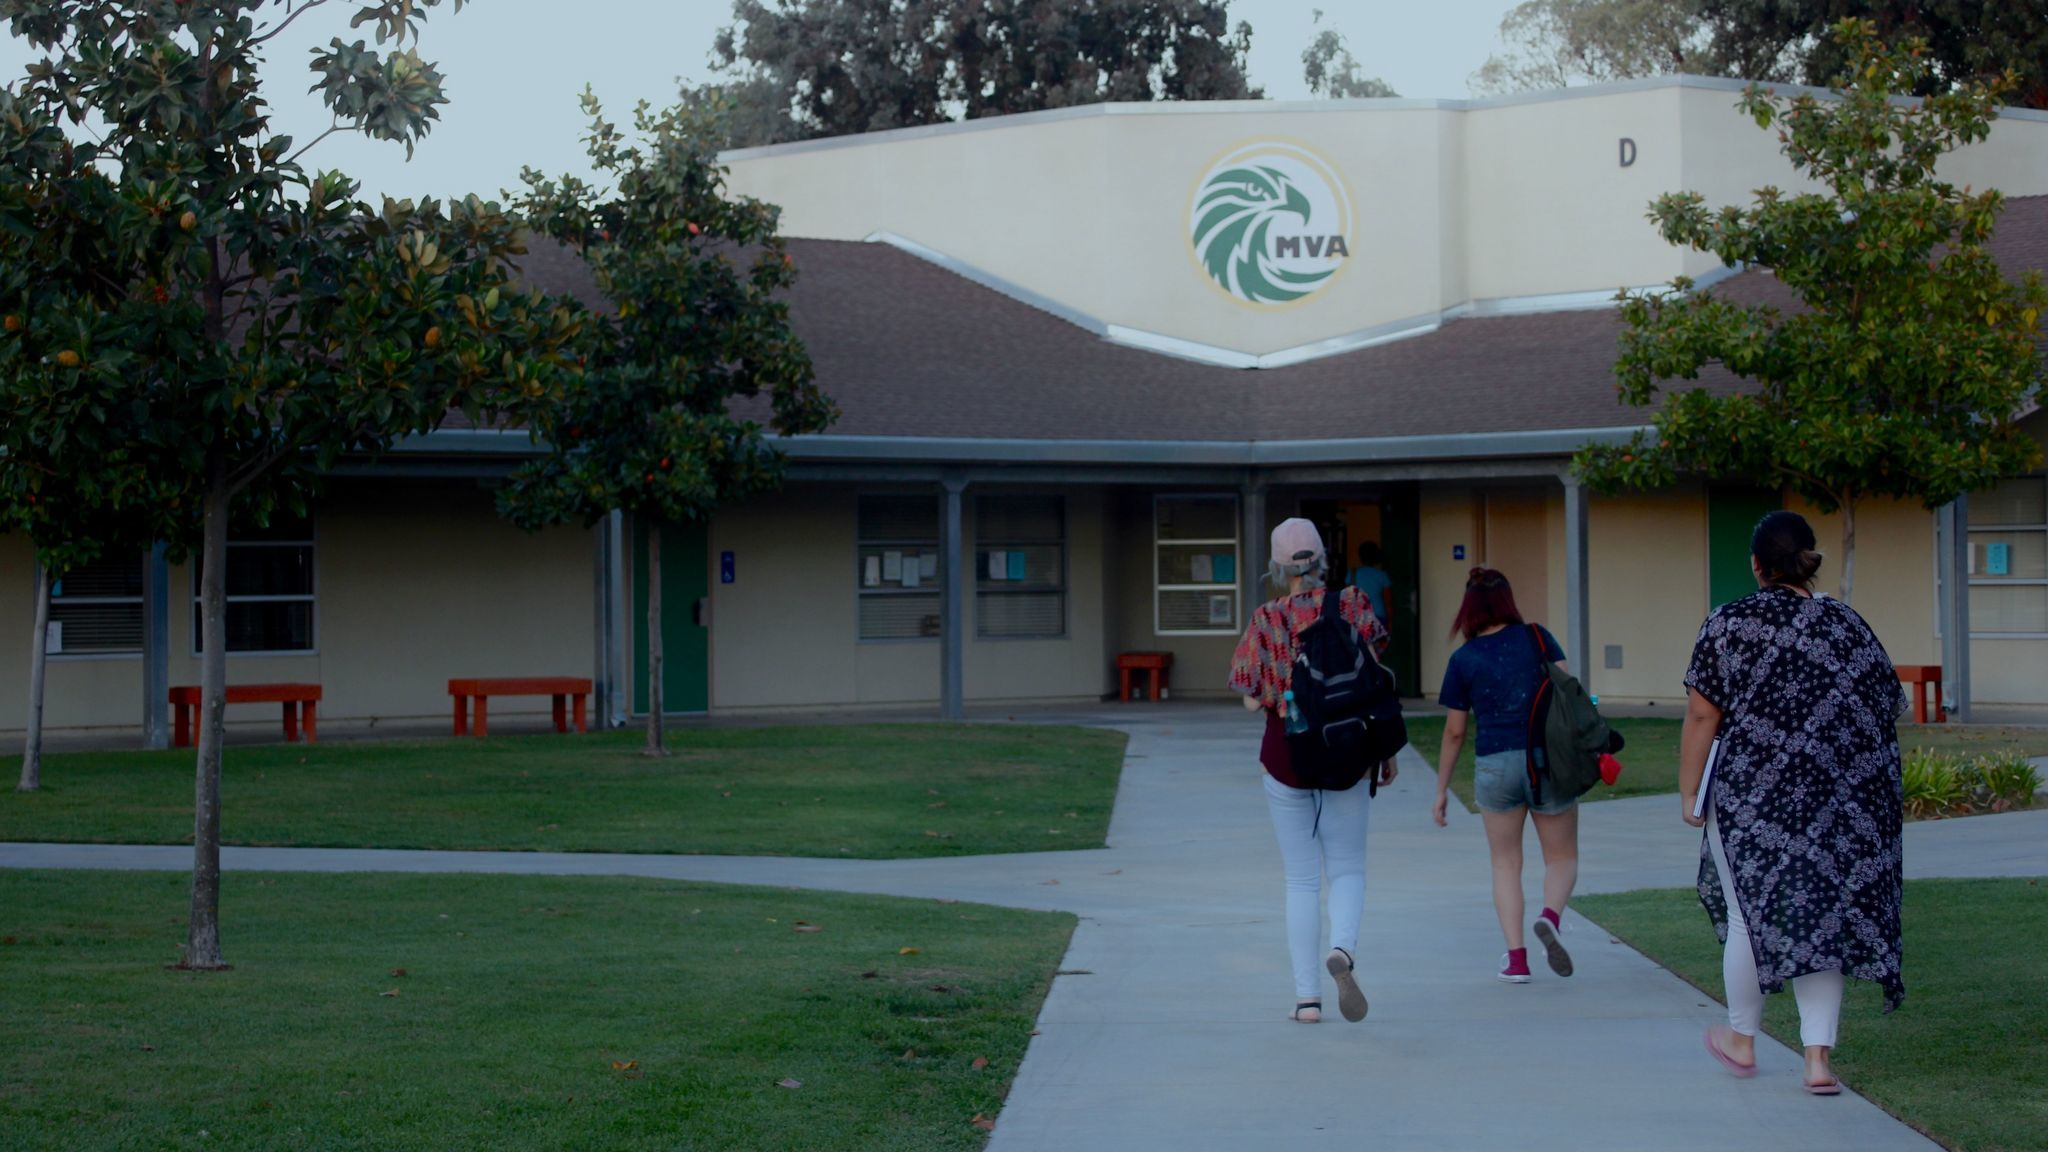 Three Ramonans - two high school students and one adult - walk to their evening college class on the Ramona Community Campus.